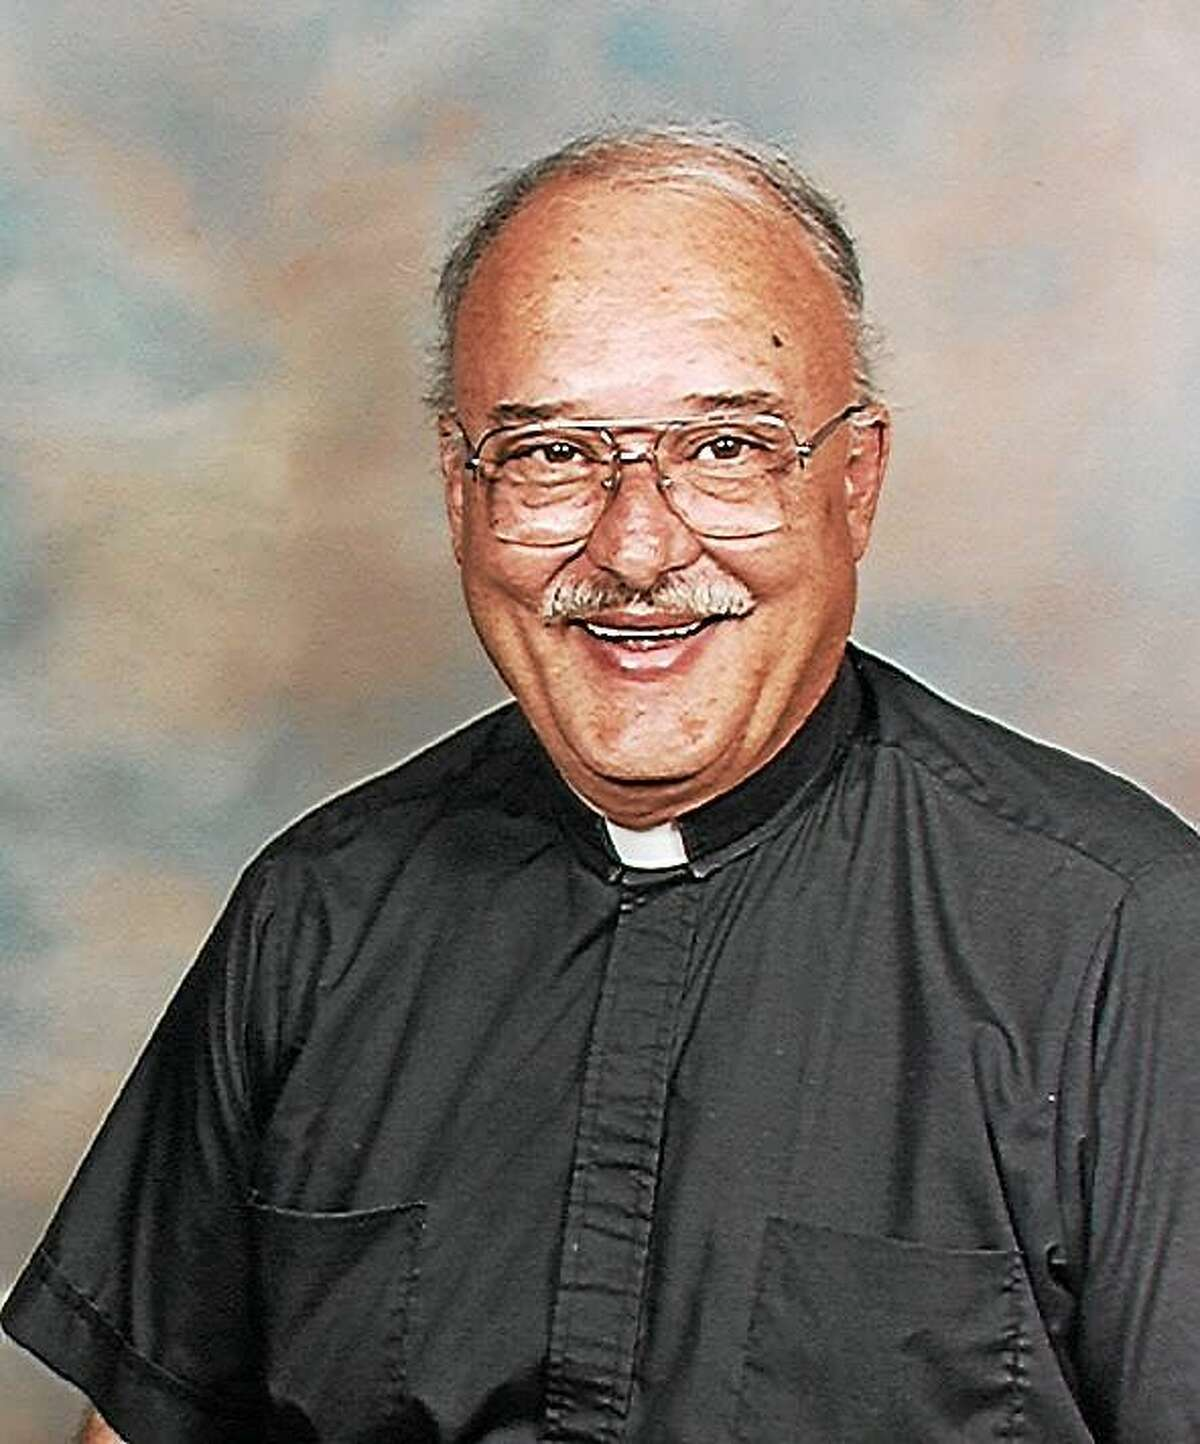 Father Paul Murdock of St. Francis of Assisi Church in Middletown died recently.